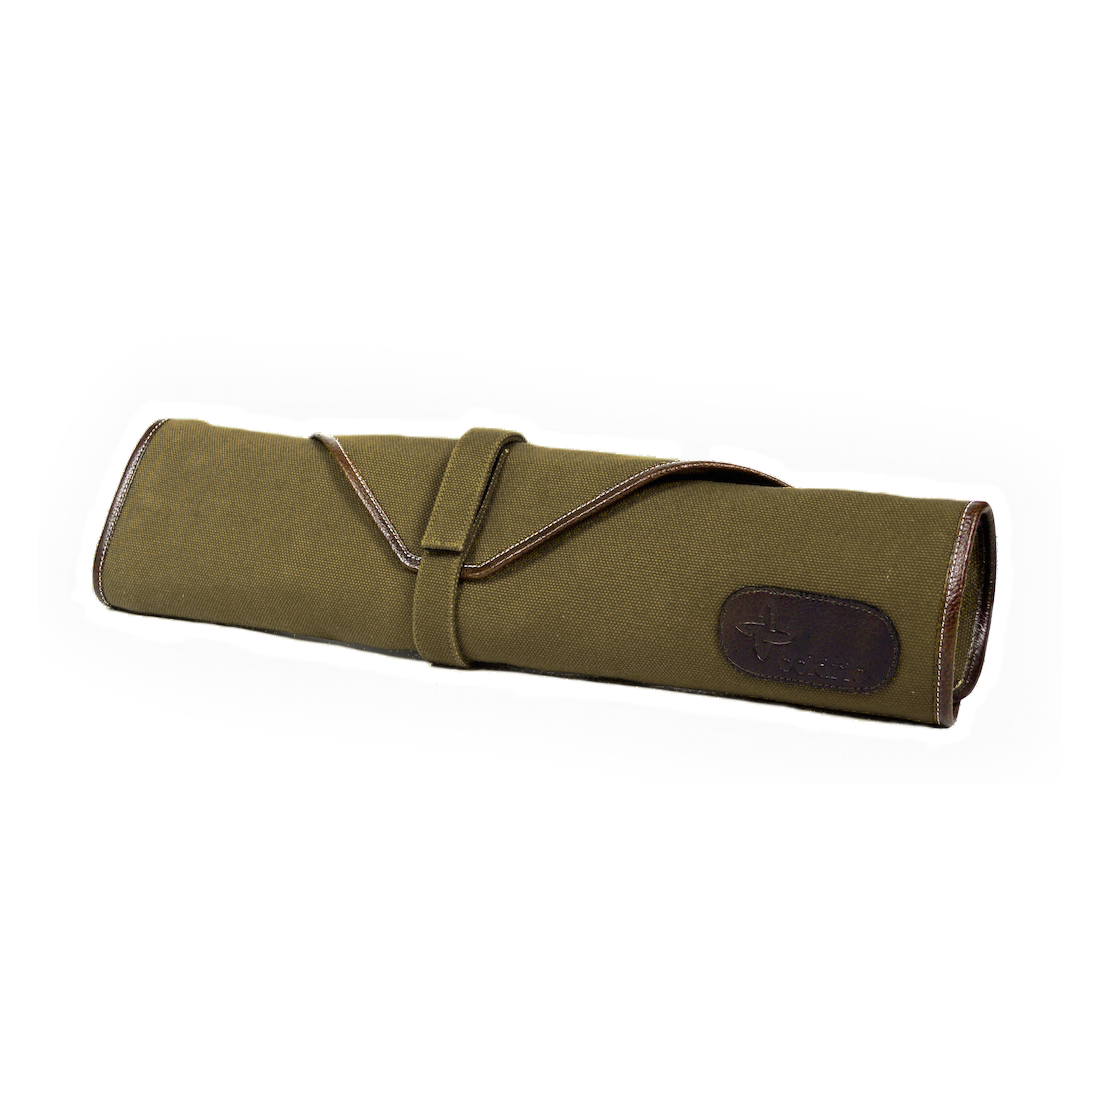 Boldric Khaki Canvas 6 Slot Knife Bag